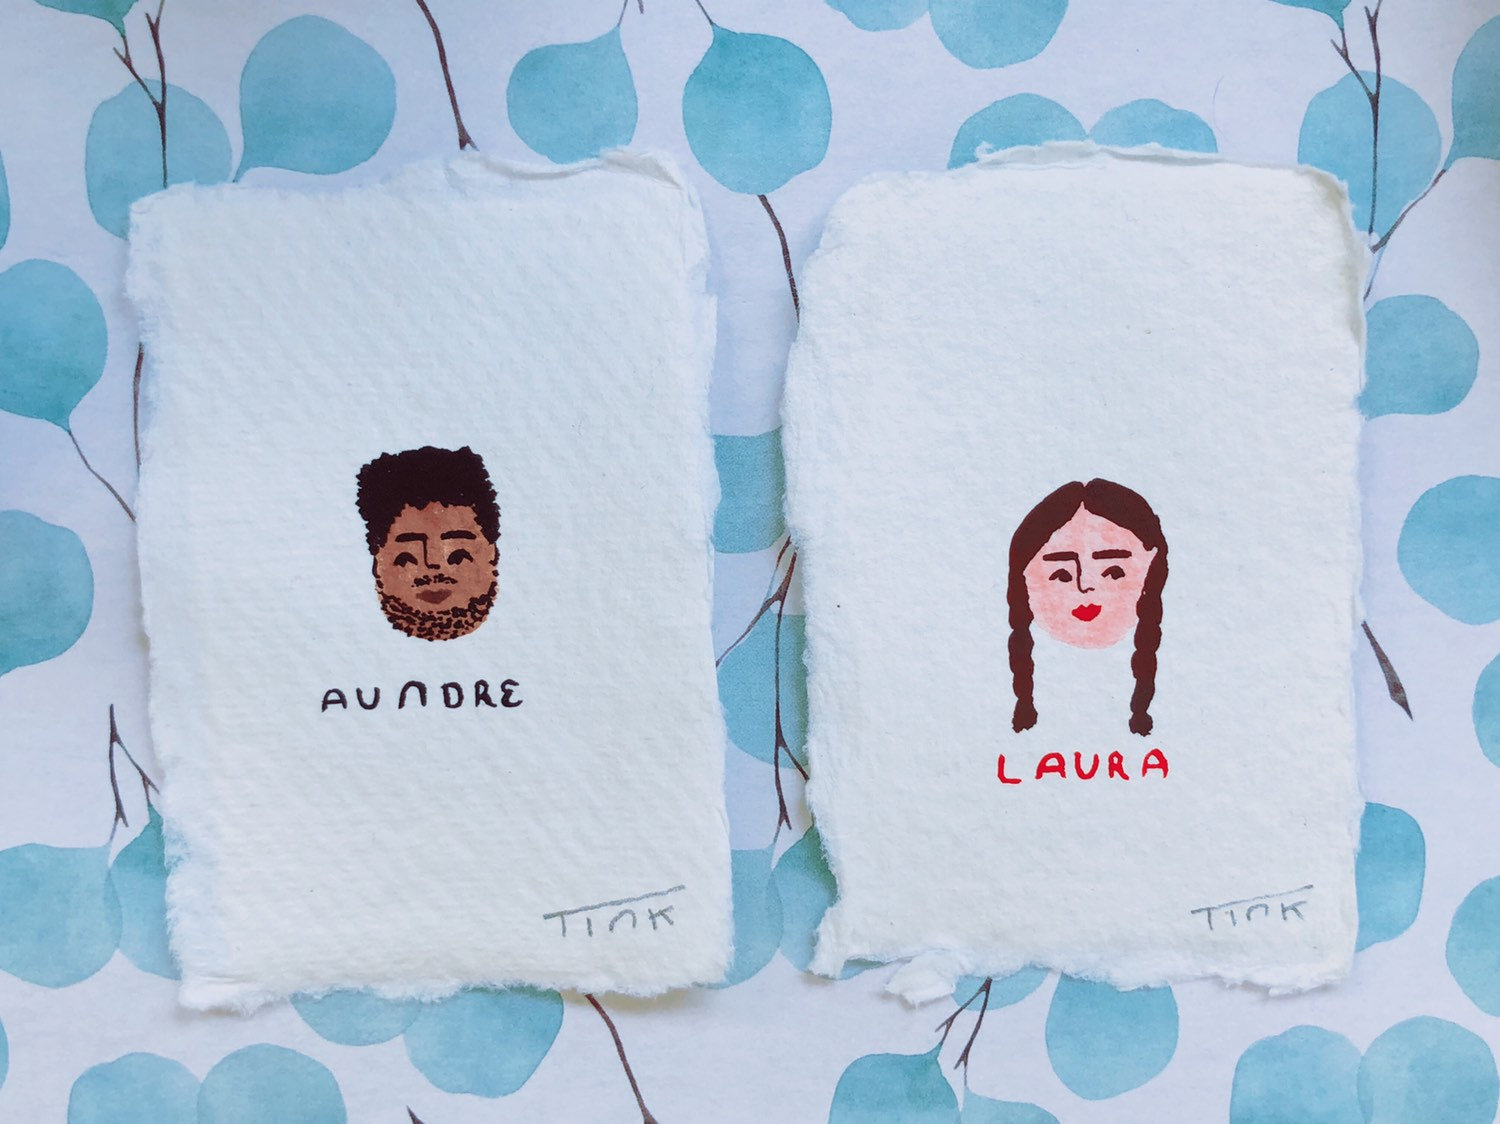 Mini illustrated portraits by Tink